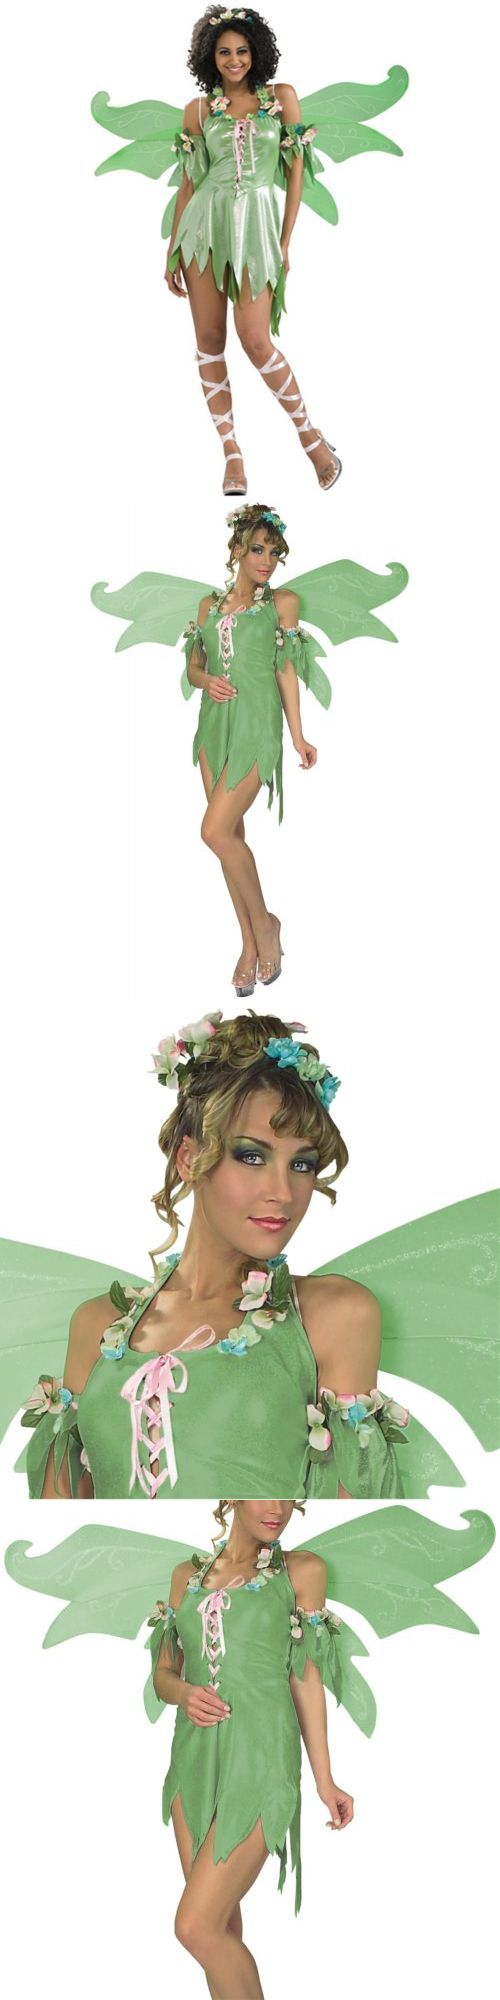 Halloween Costumes: Green Fairy Costume Adult Tinkerbell Halloween Fancy Dress -> BUY IT NOW ONLY: $38.29 on eBay!